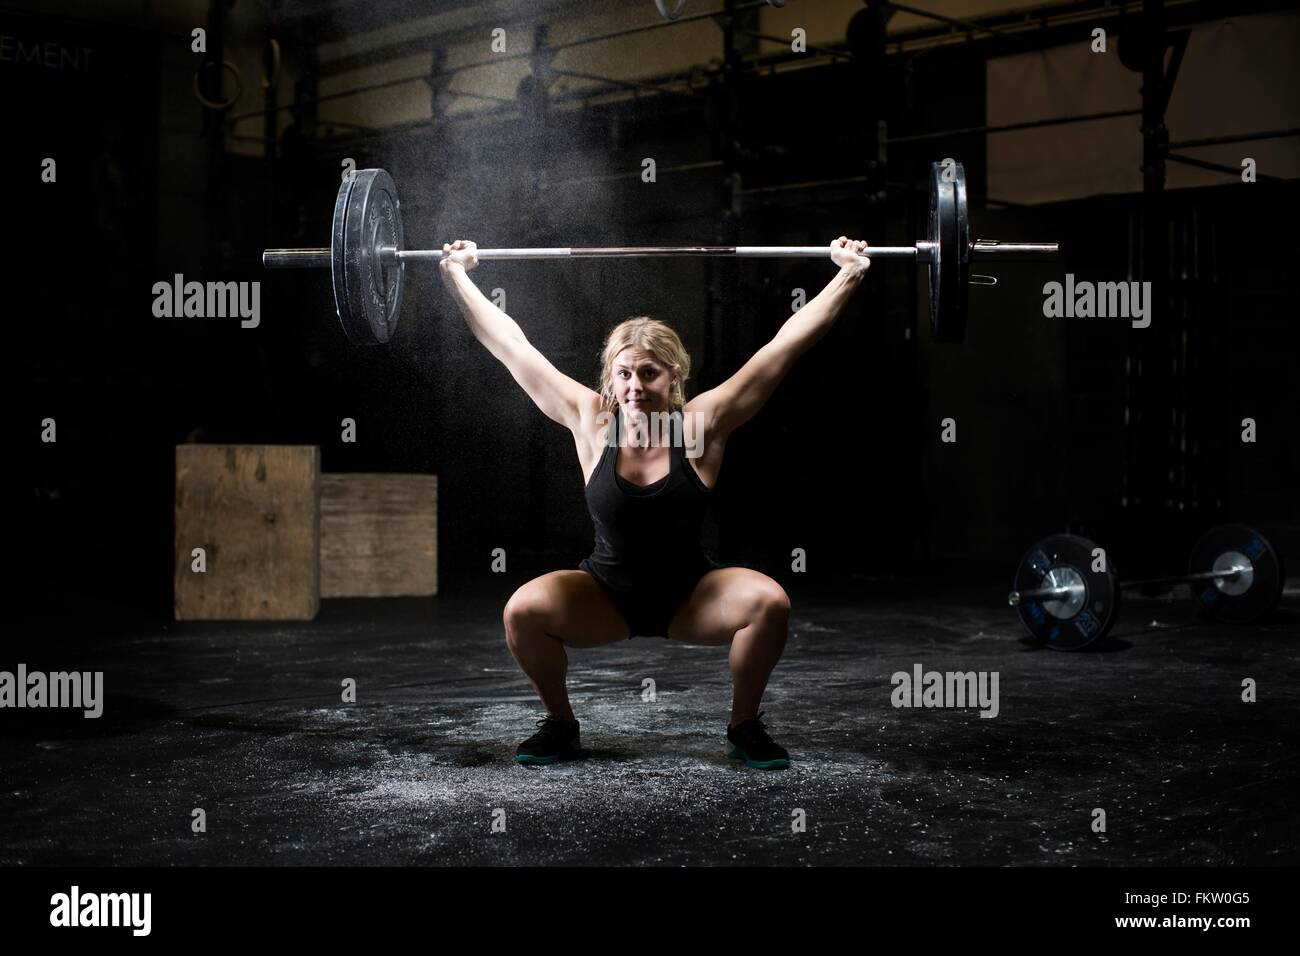 Young woman weightlifting barbell in dark gym - Stock Image